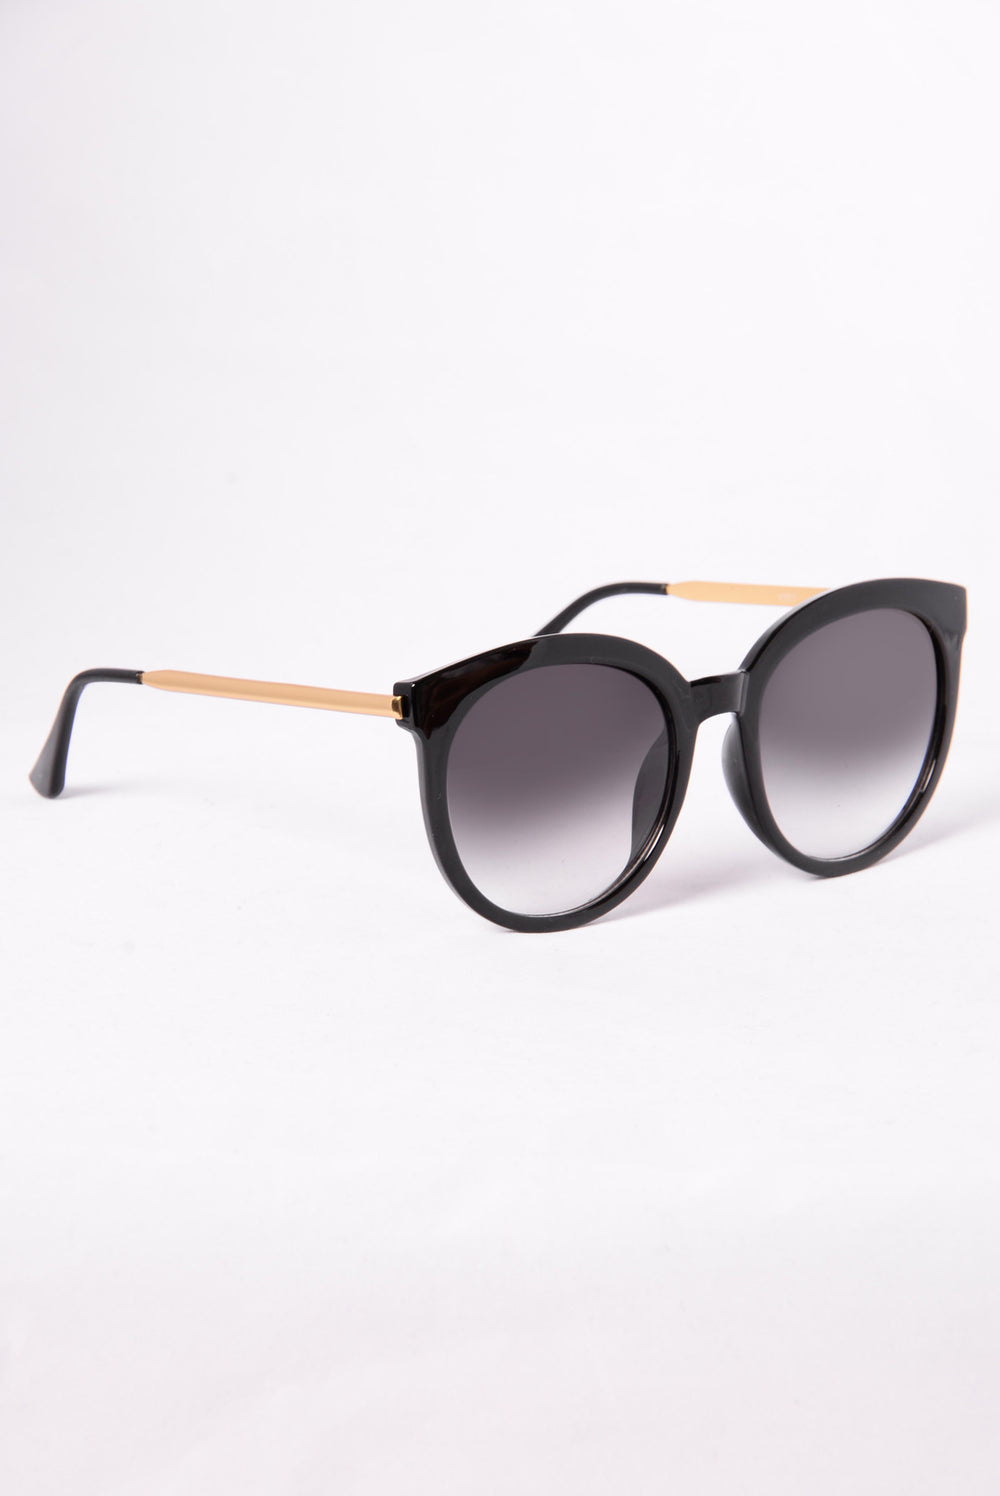 Mar Del Sur Sunglasses - Black/Gold